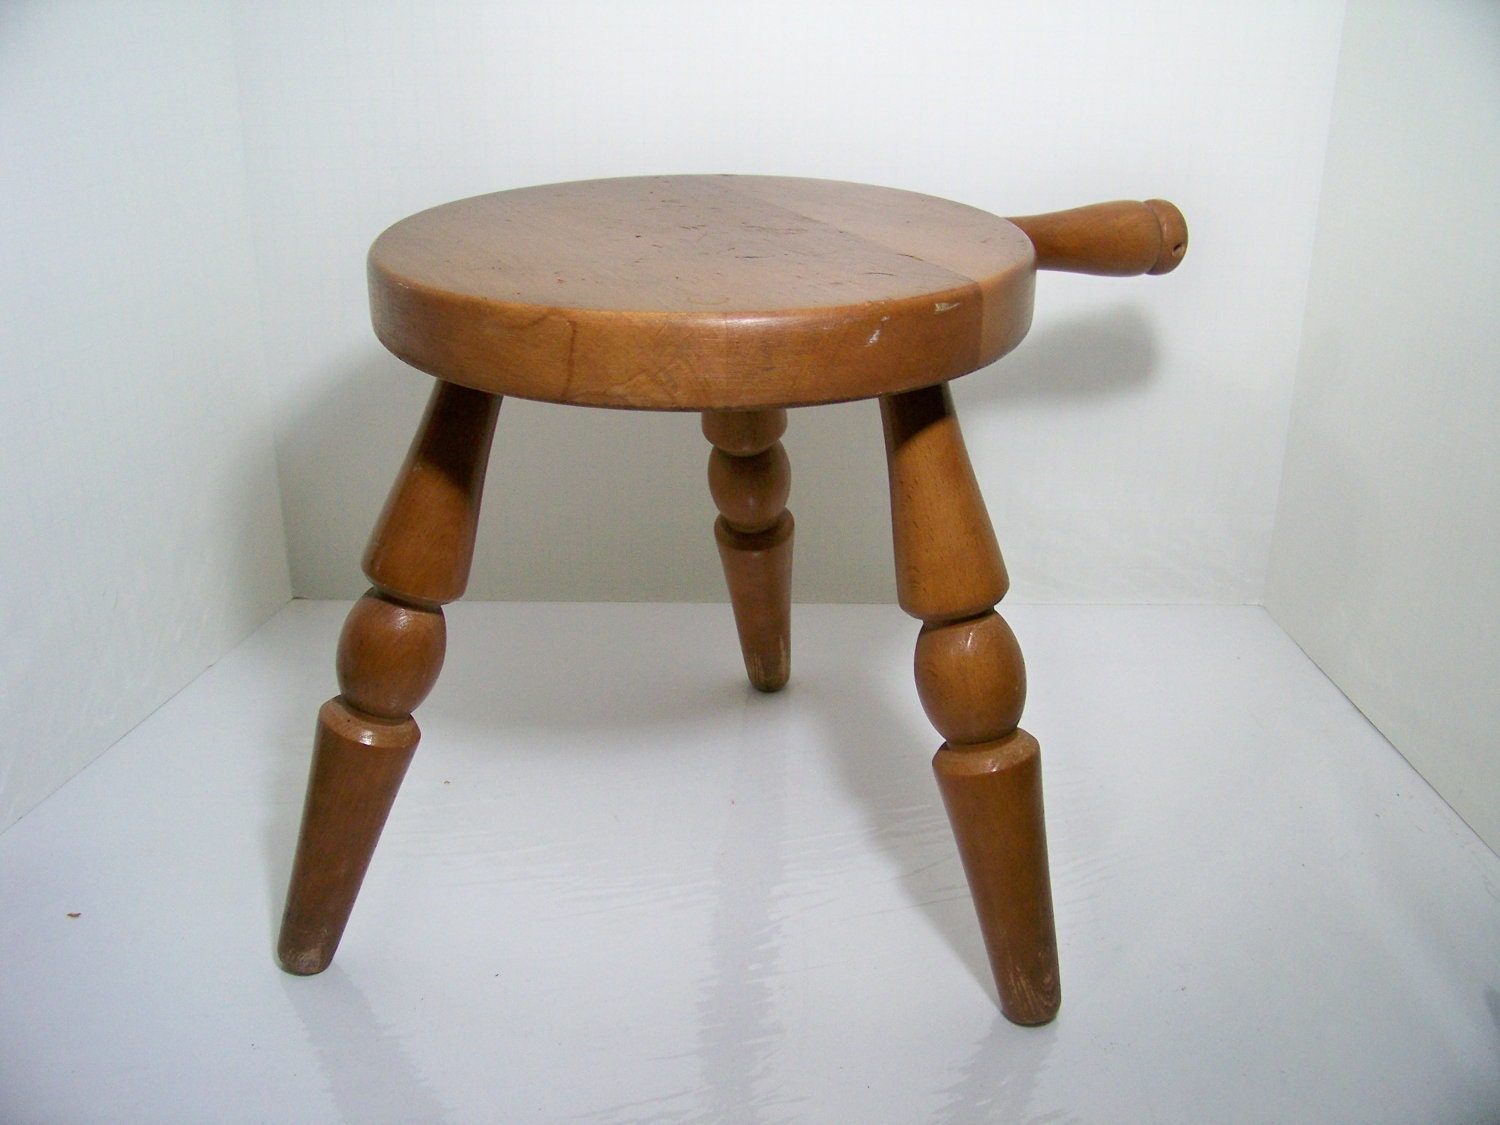 3 Legged Wood Milk Stool Authentic Furniture El By